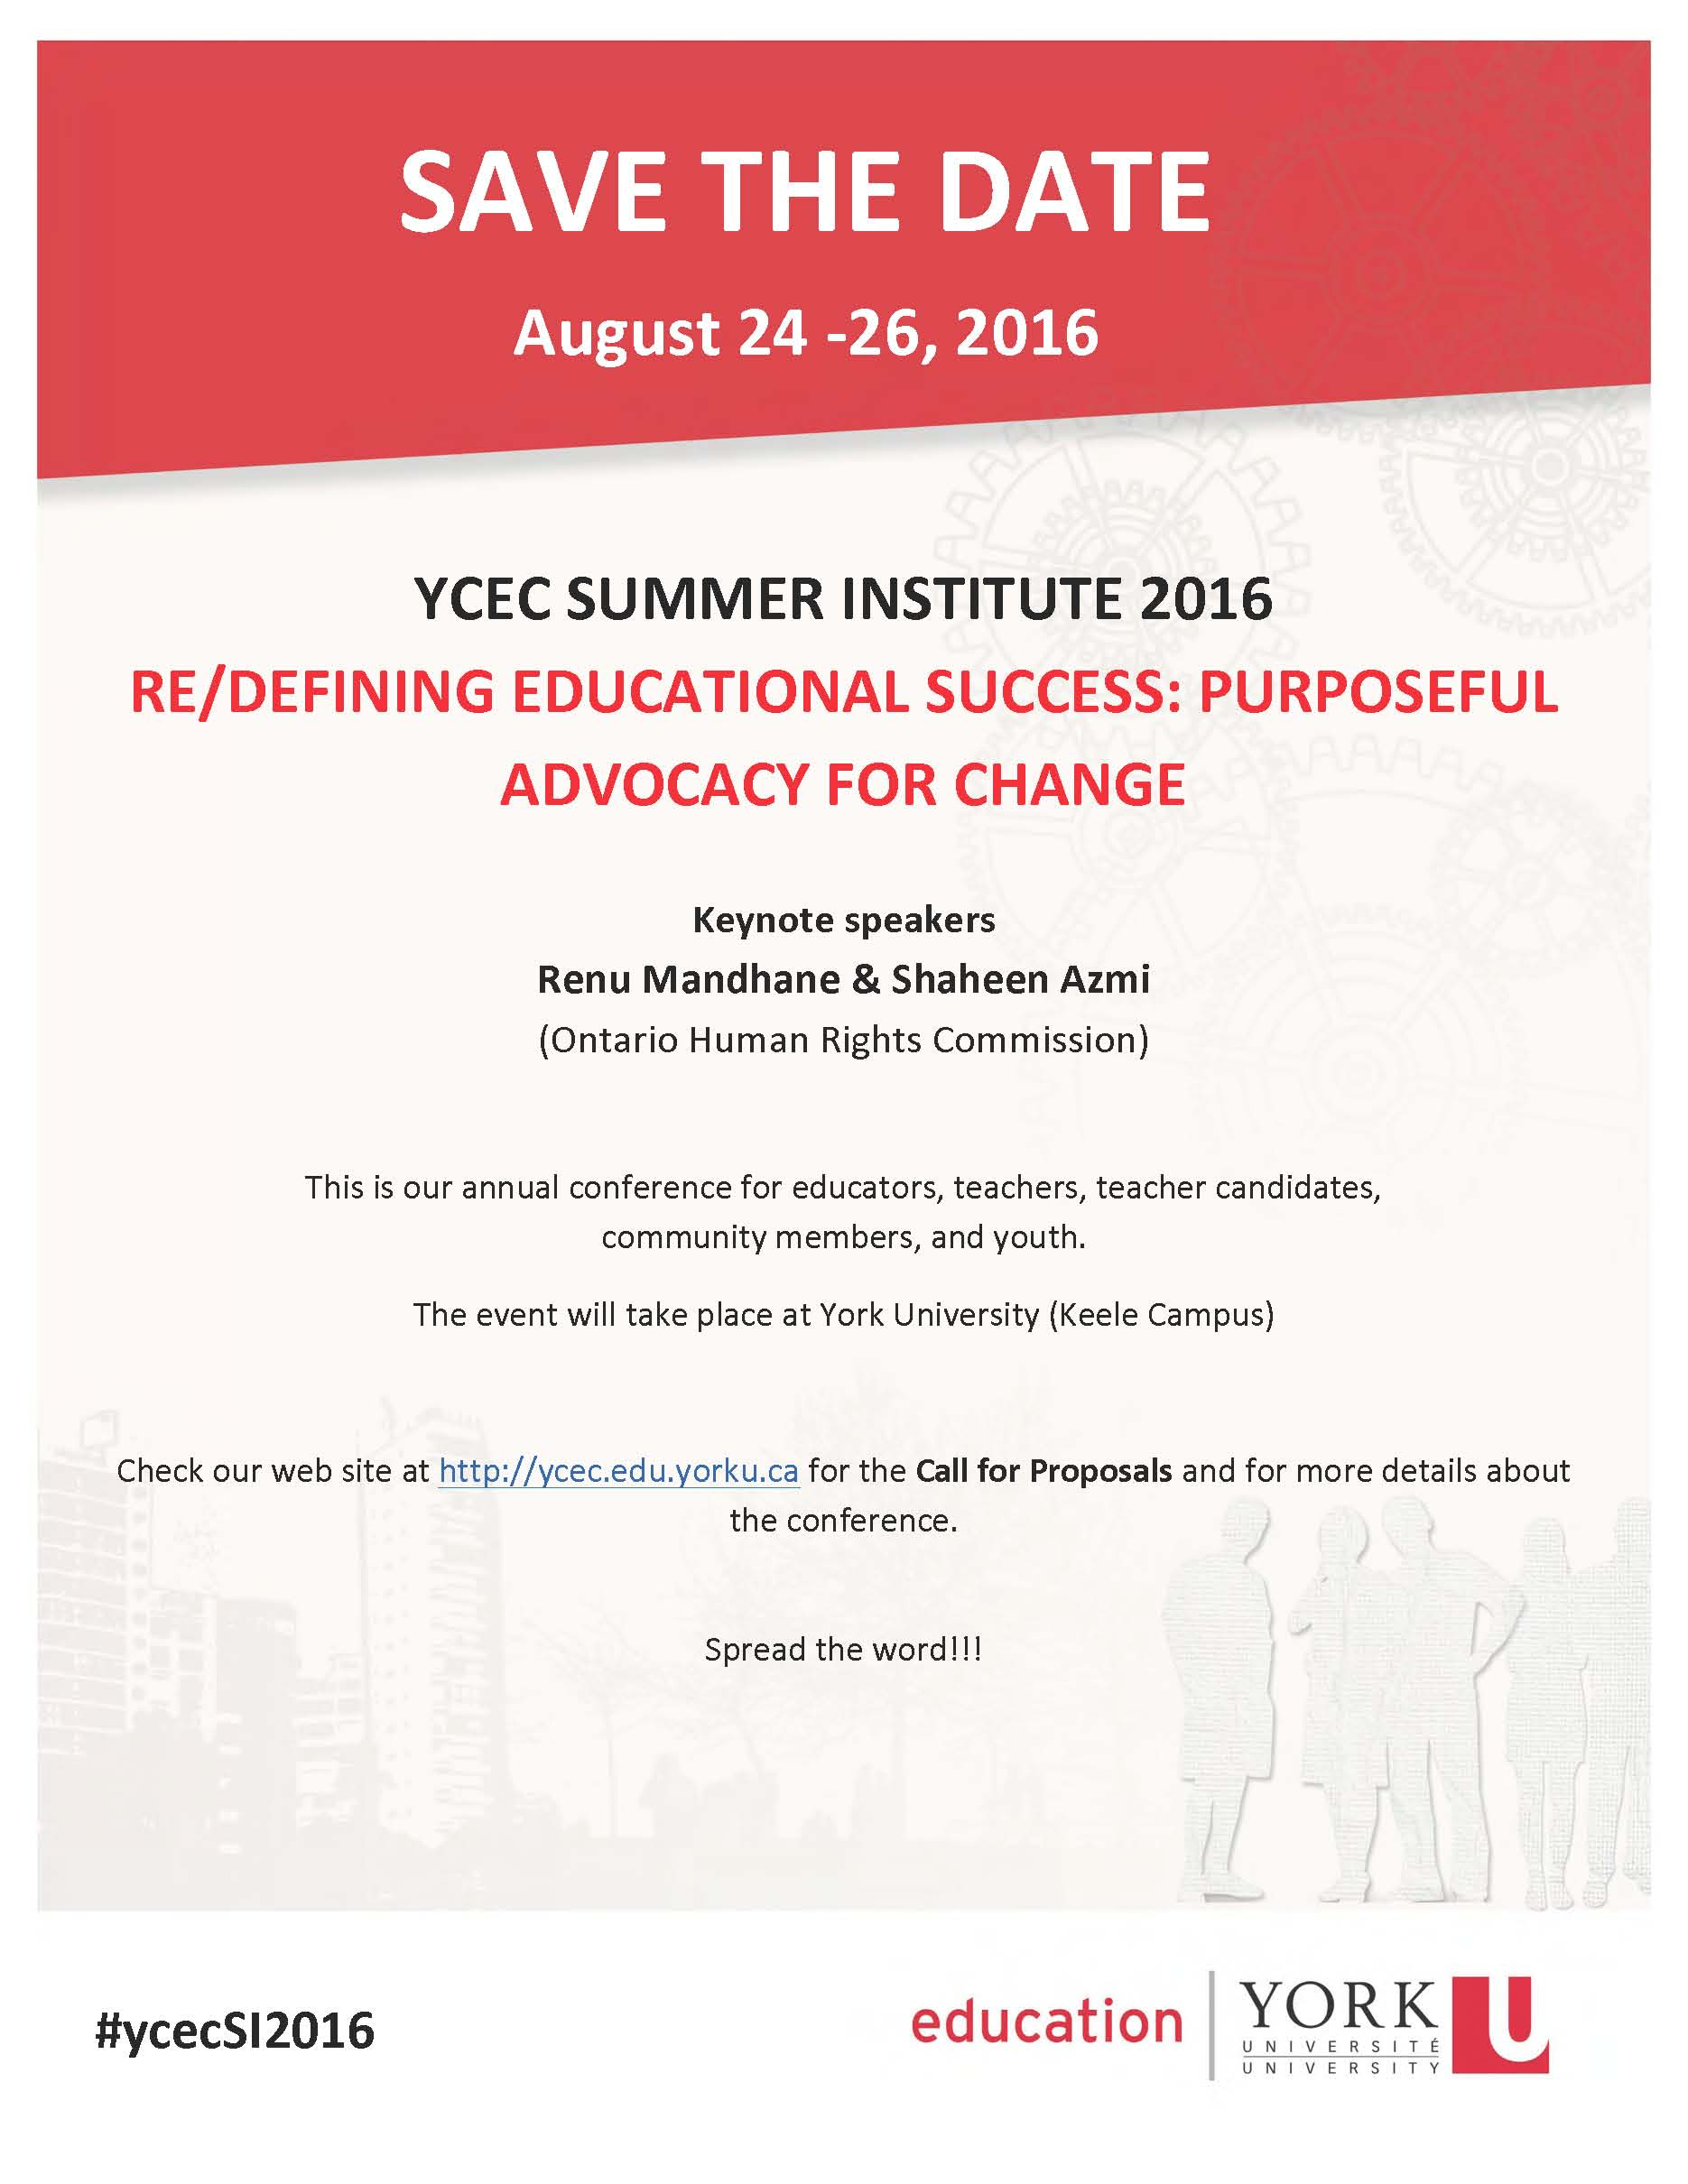 YCEC Summer Institute 2016 - Save the date